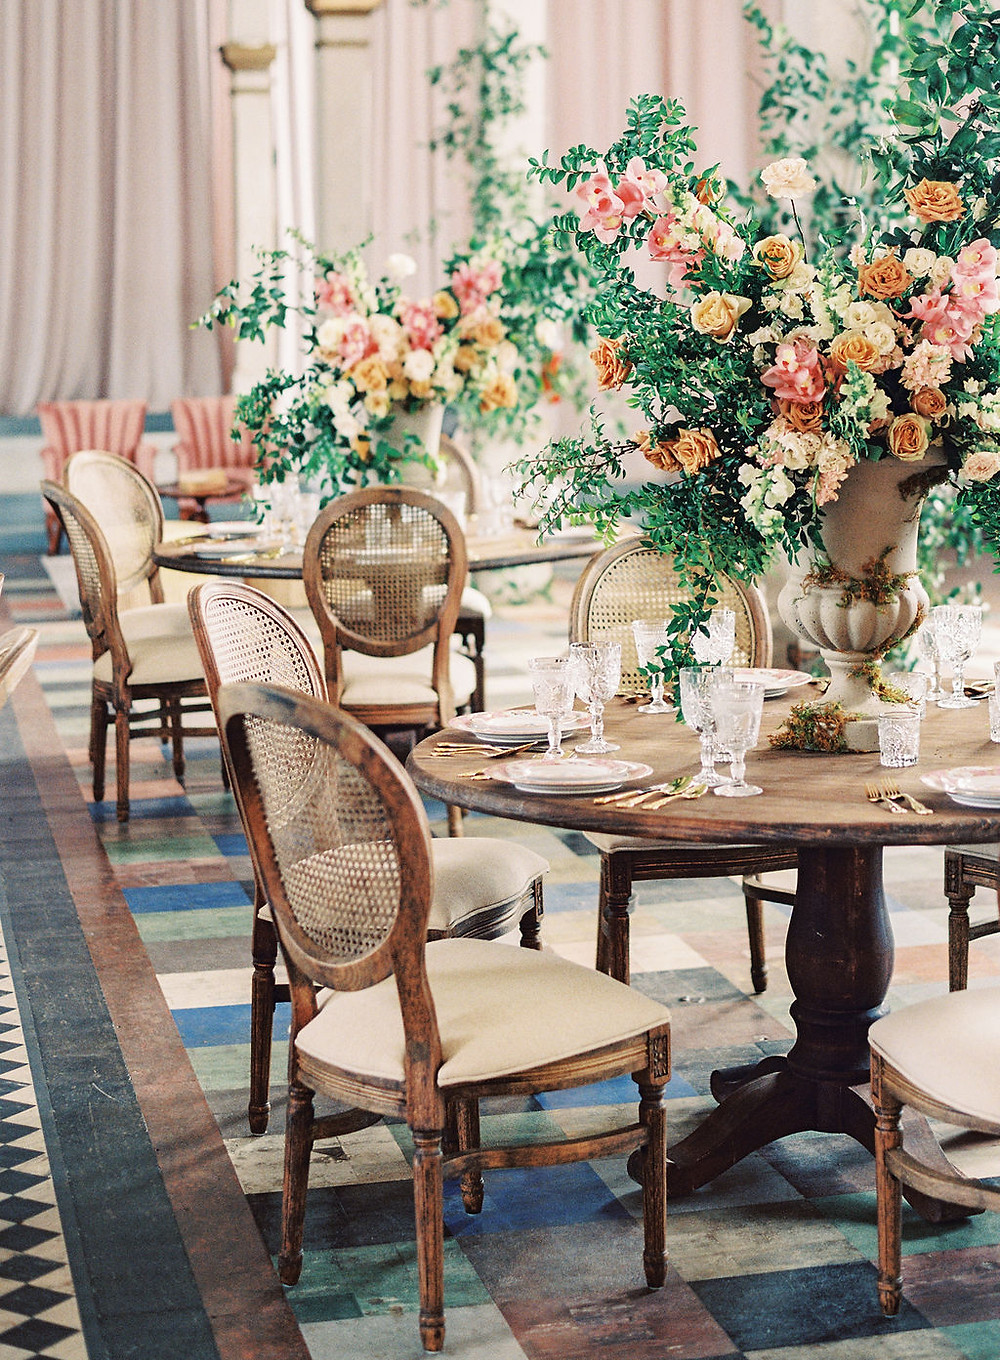 Seated Dinner for Bridgerton Inspired Wedding at the Marigny Opera House in New Orleans with Decor, Lounge Spaces, and Vintage Furniture by Lovegood Rentals Featuring Caned Louis Chairs, Round Mahogany Tables, Gold Flatware and Overgrown Florals